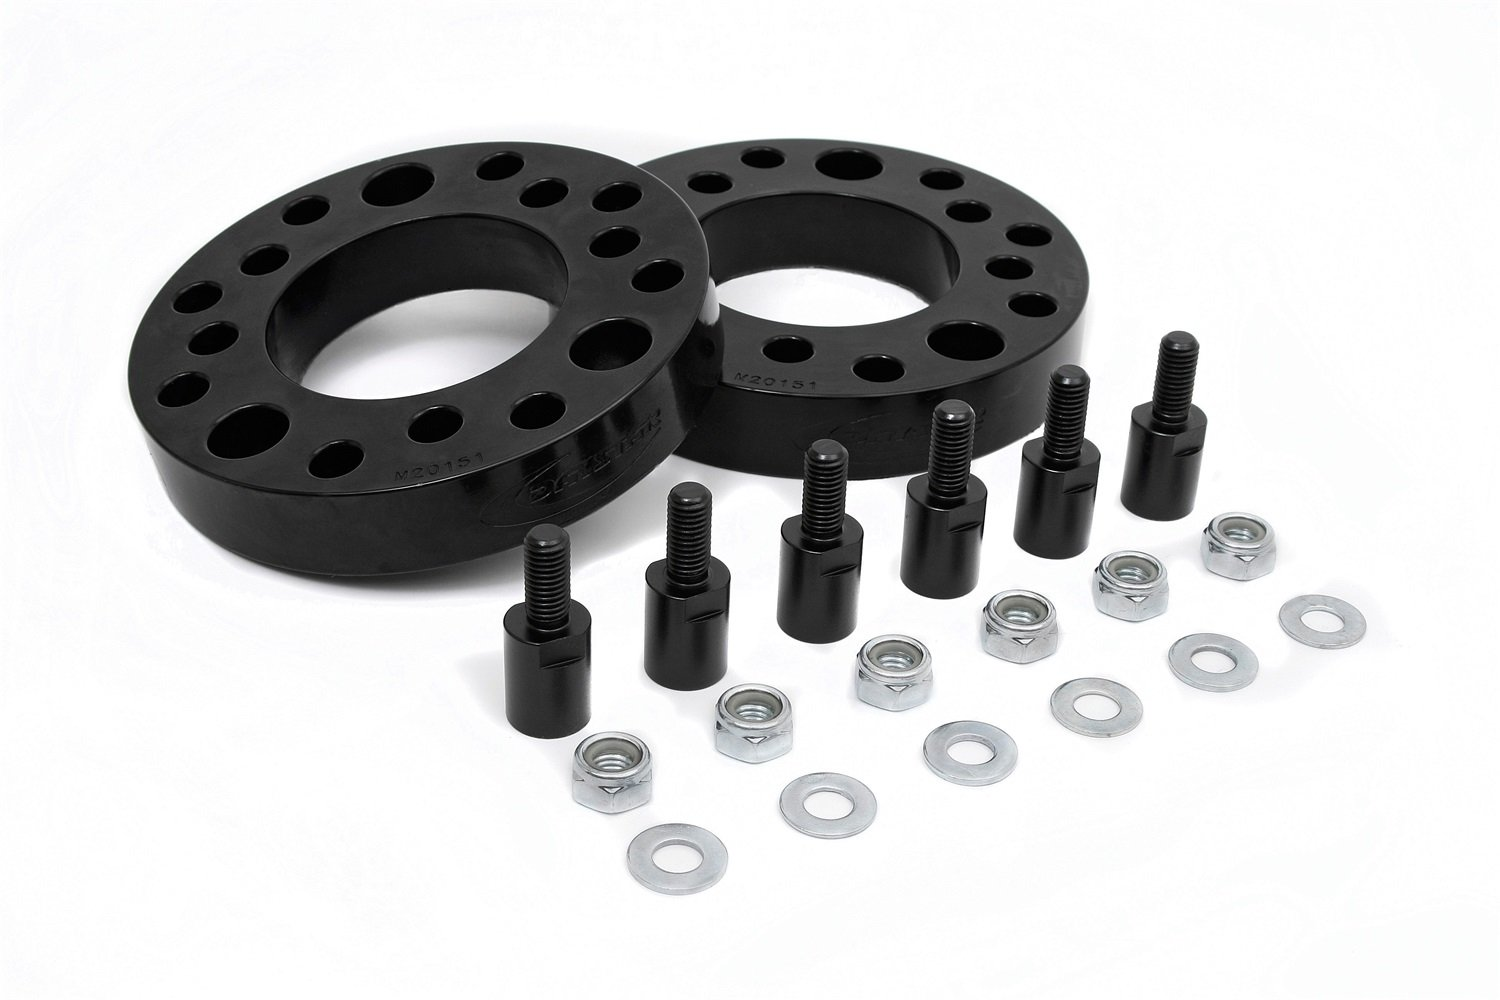 Daystar KF09124BK 2-Inch Front Suspension Lift Coil Spring Spacer Kit with Hardware